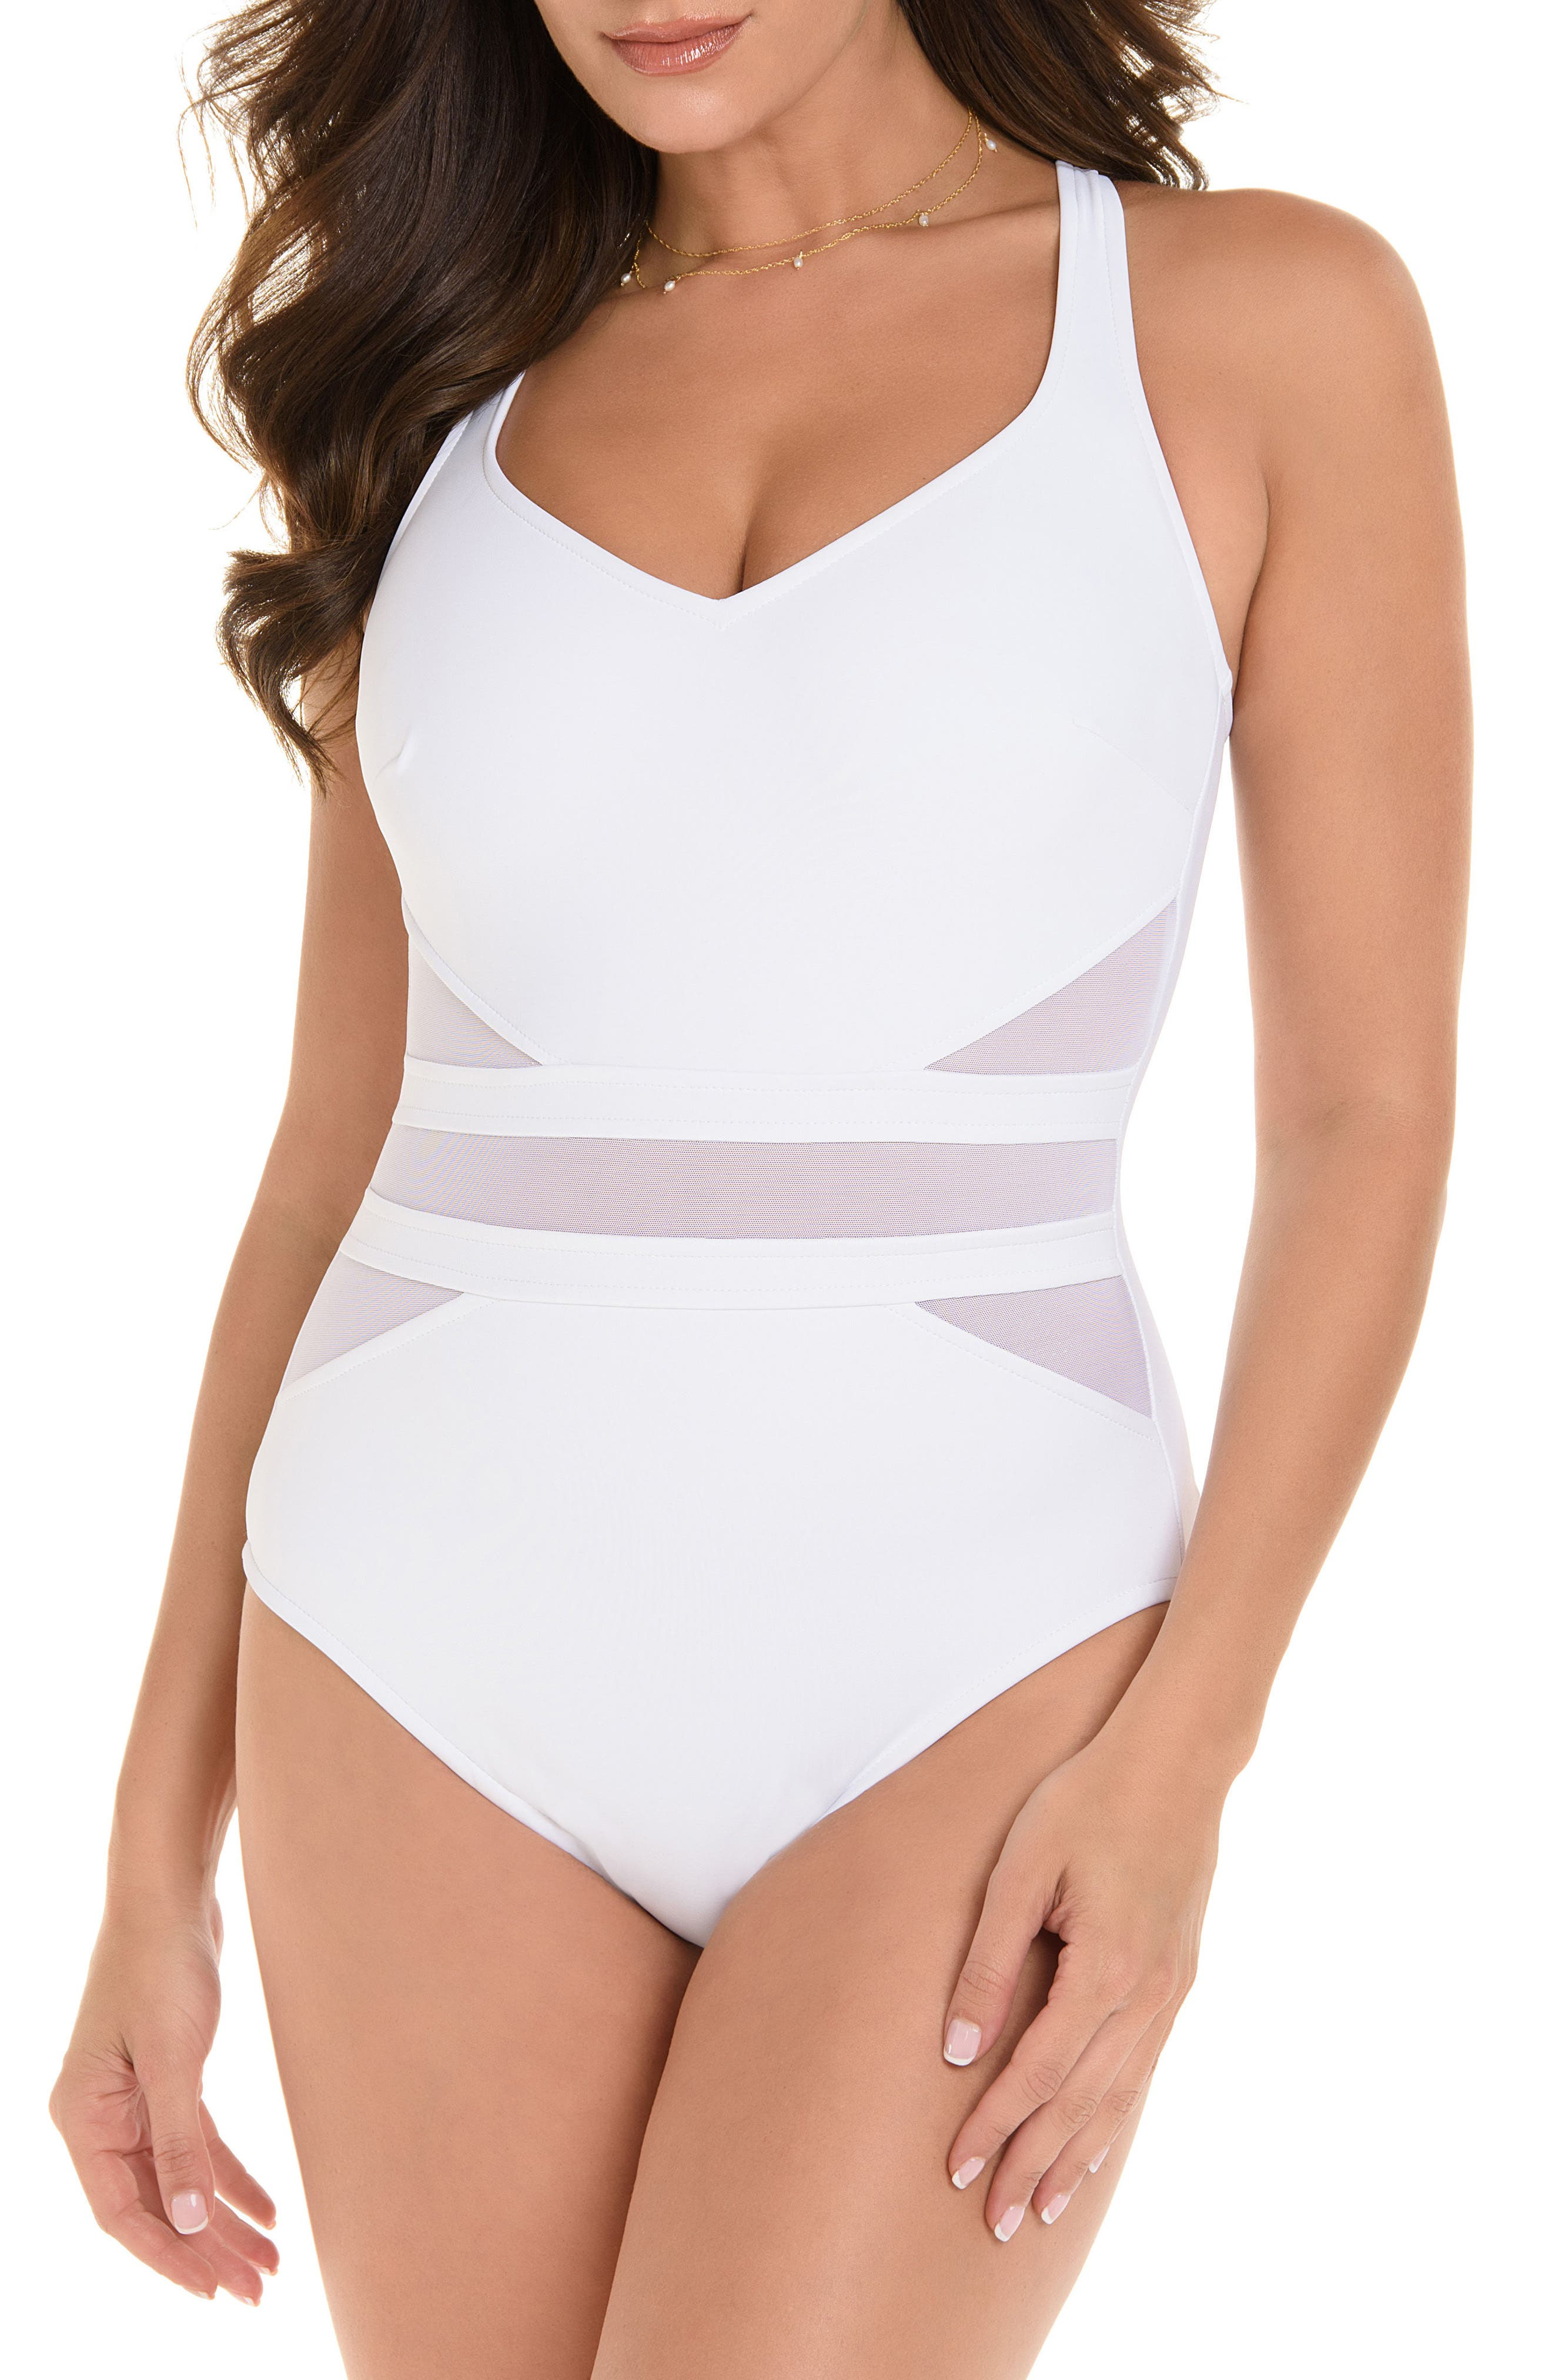 Illusionist It's a Cinch One-Piece Swimsuit, Main, color, 100